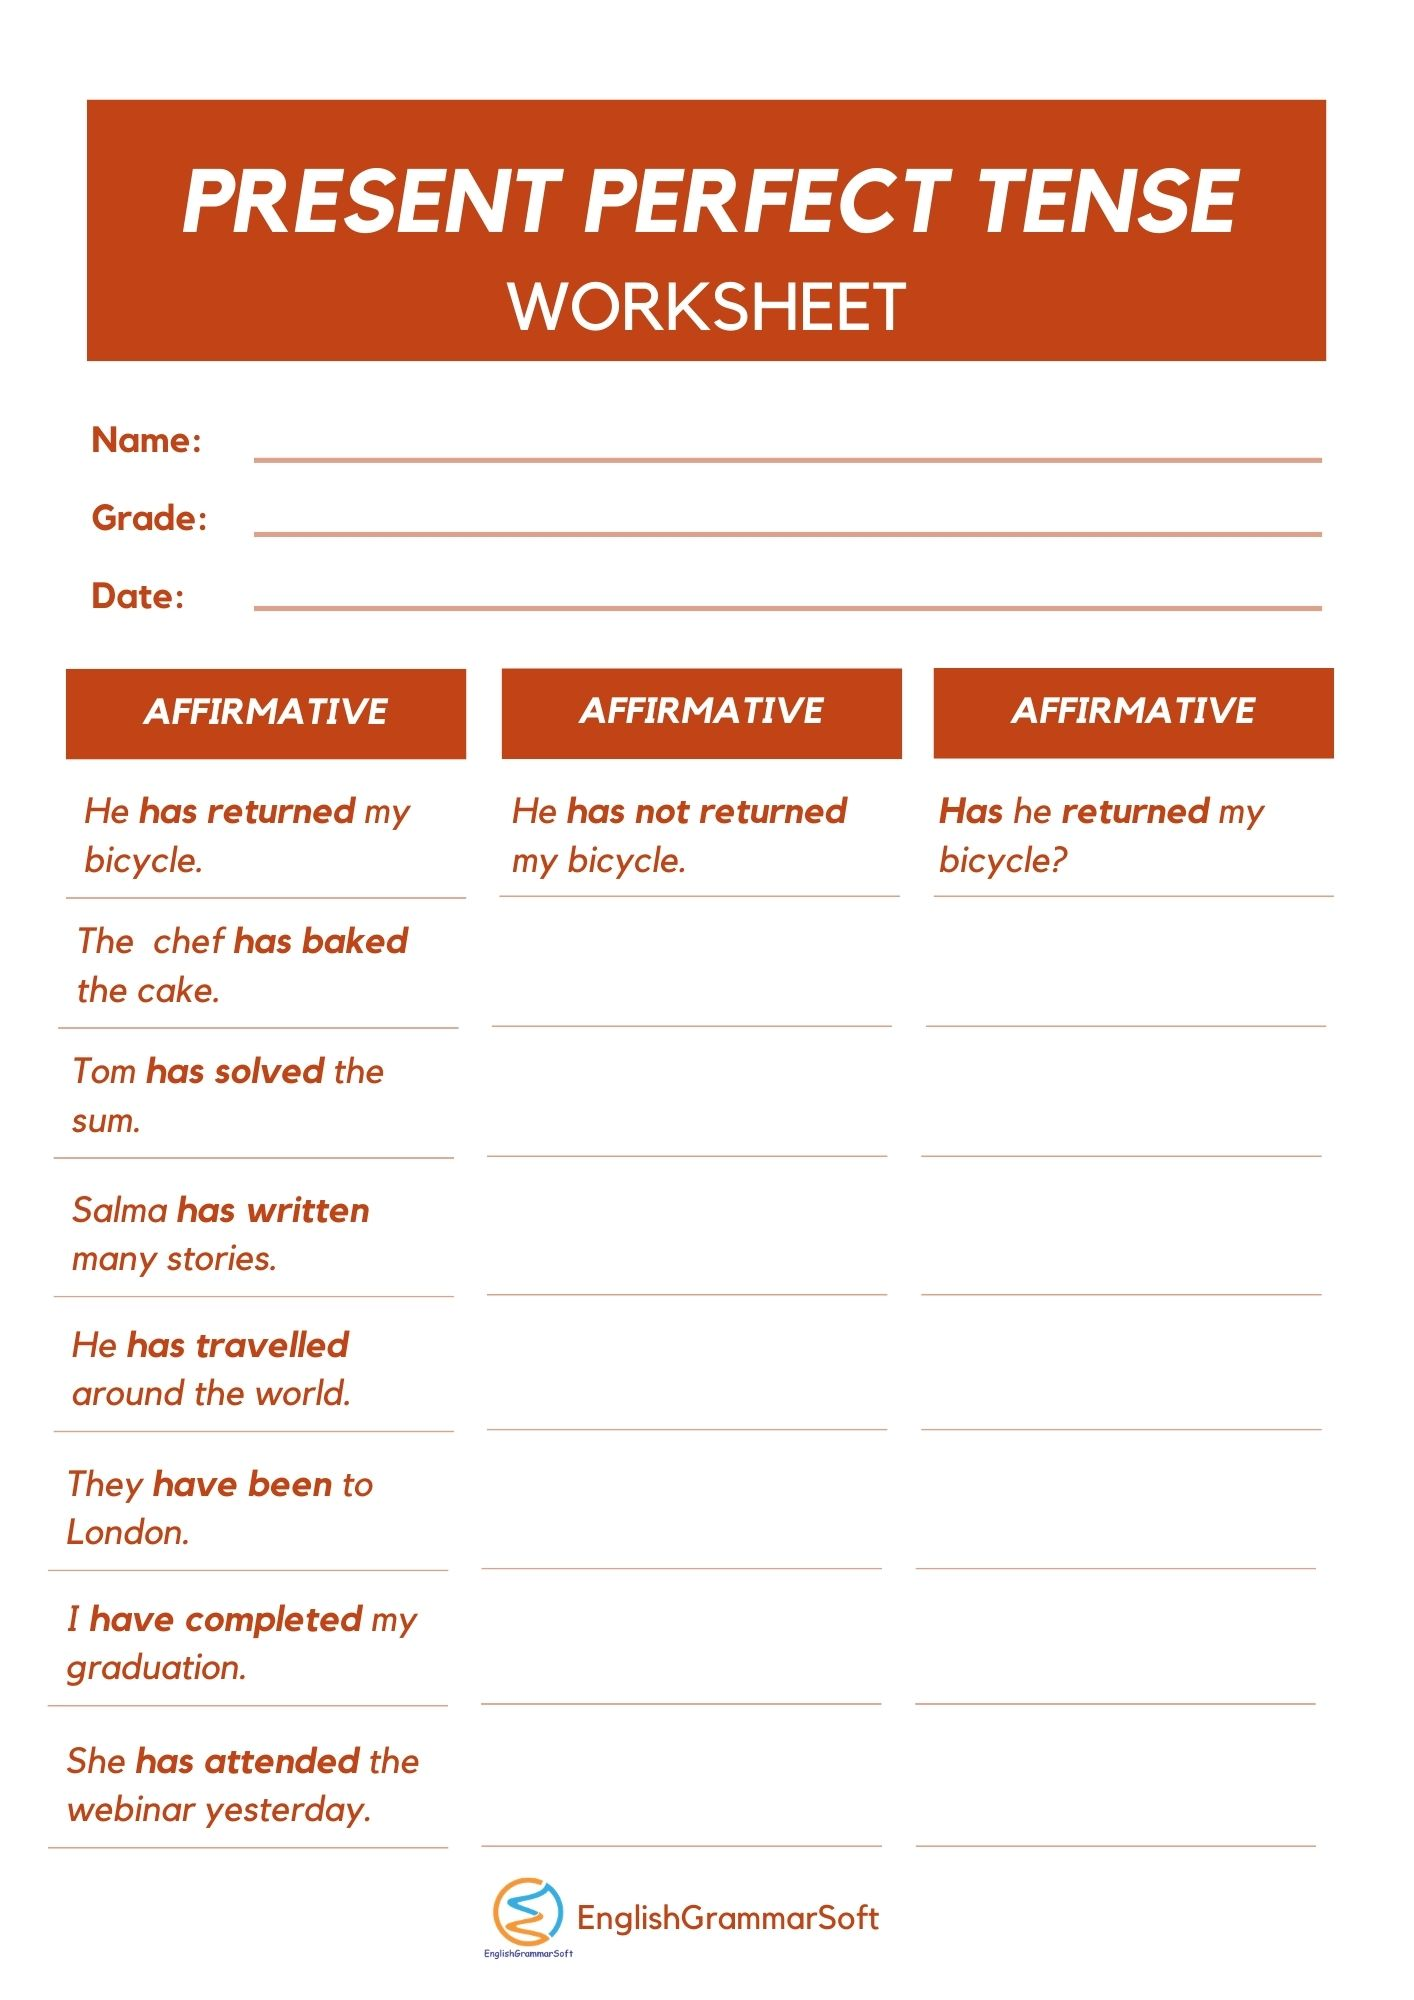 Present Perfect Tense Worksheets with Answers